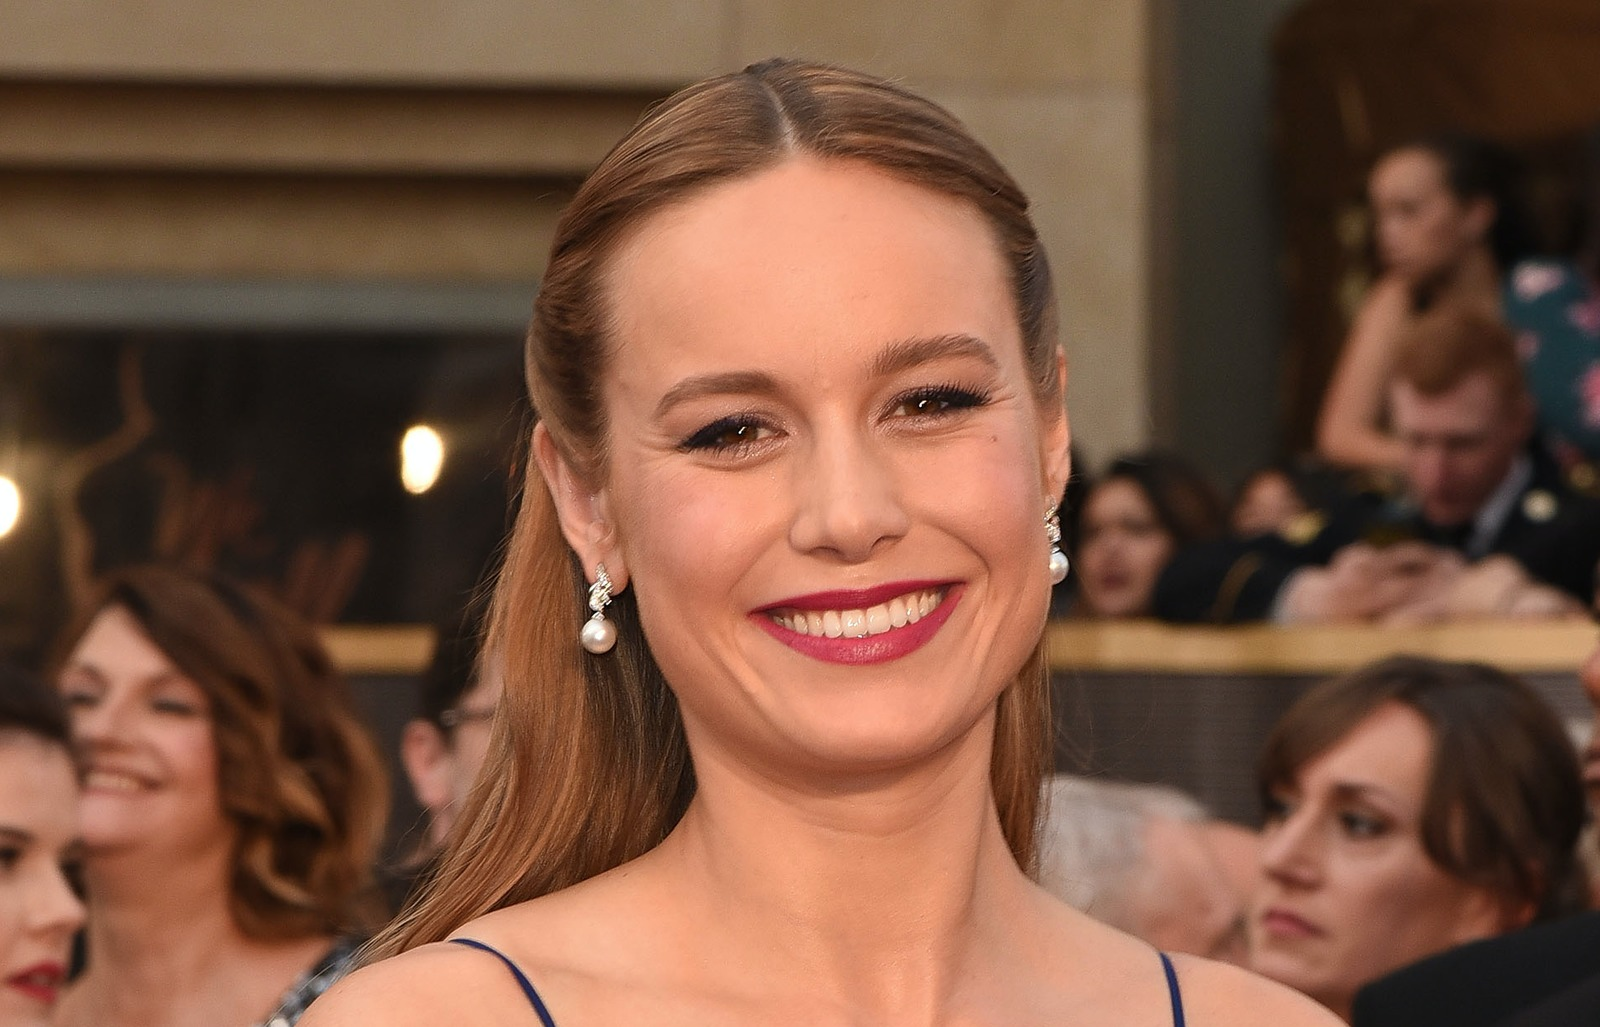 Brie Larson struggles with social anxiety